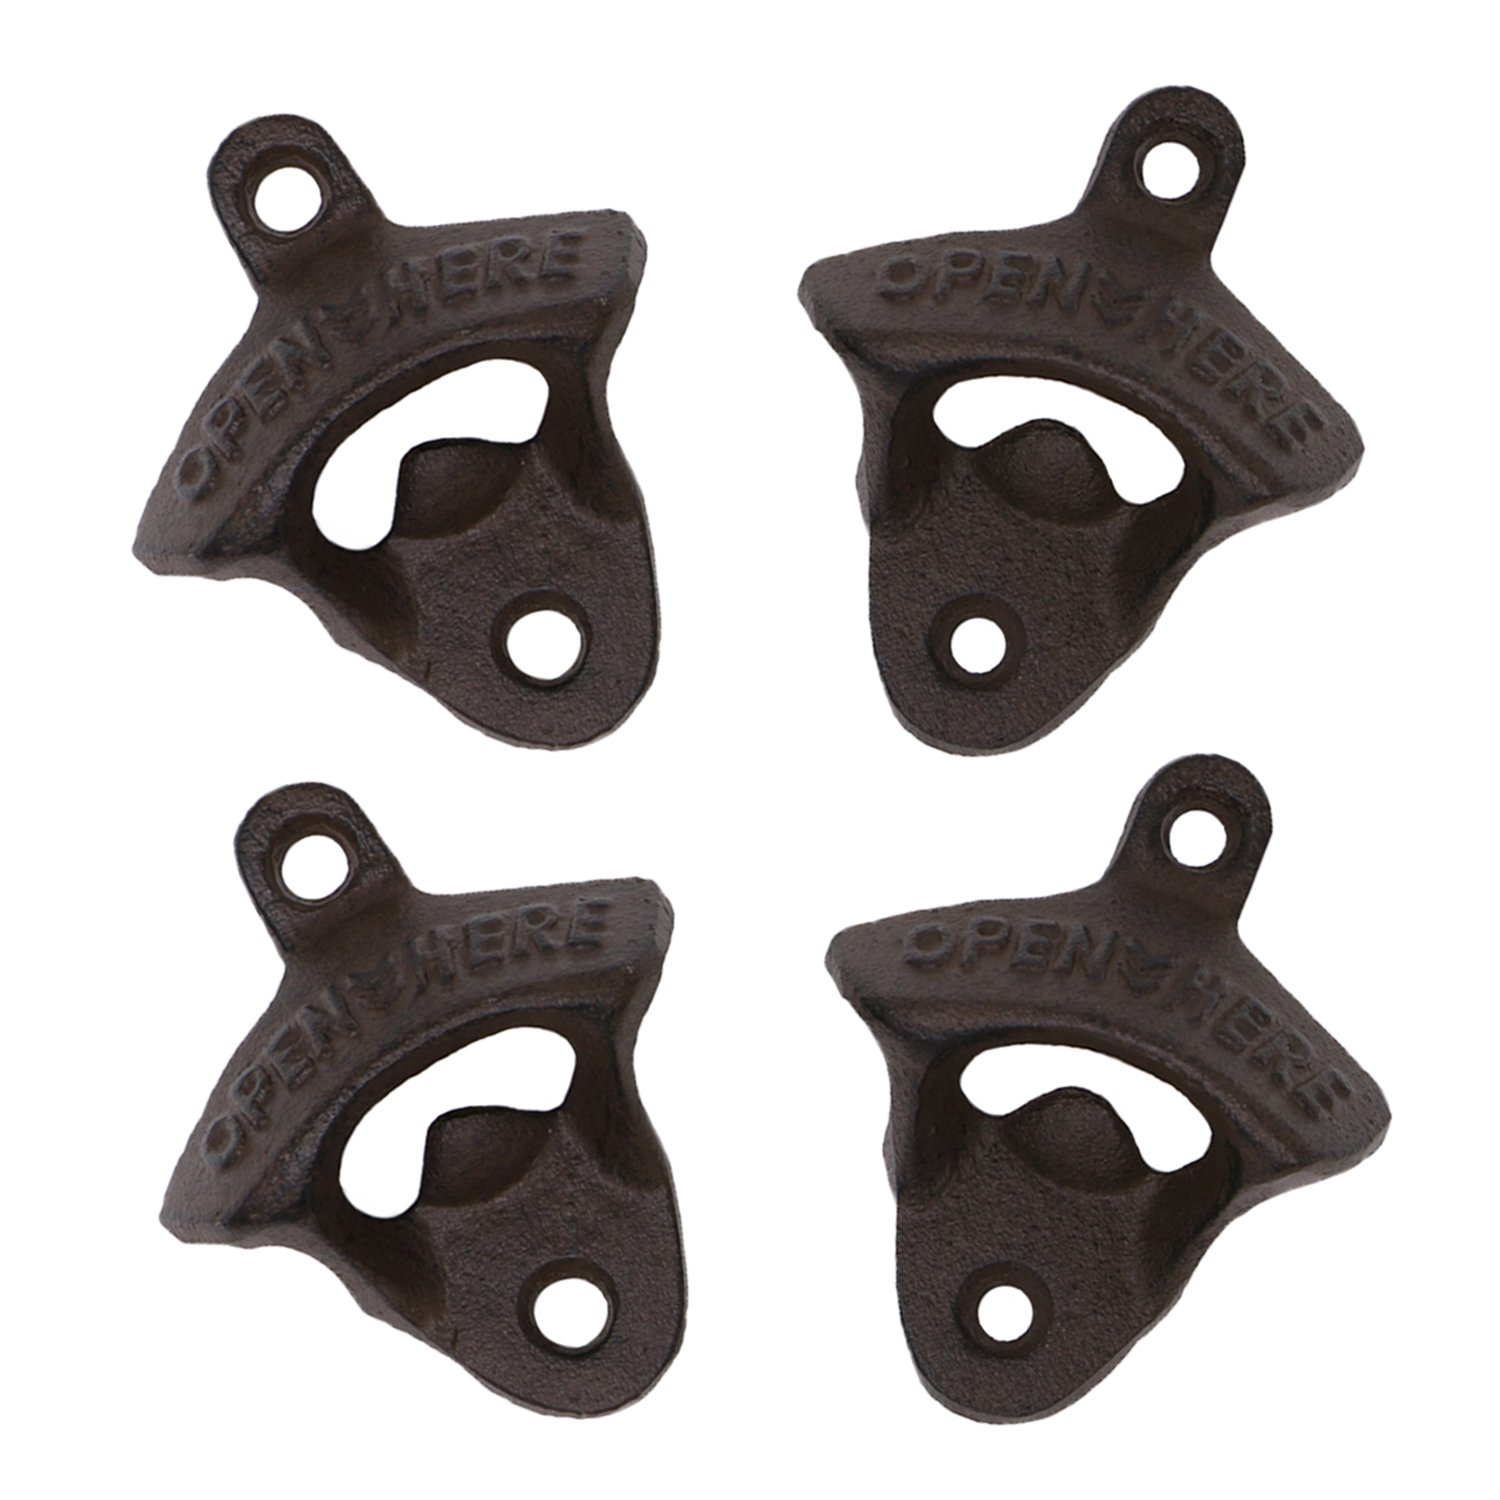 Wall Mounted Bottle Opener Rustic Farmhouse Cast Iron with Screws by iGraver - 1 pack (Rust-1 pack)